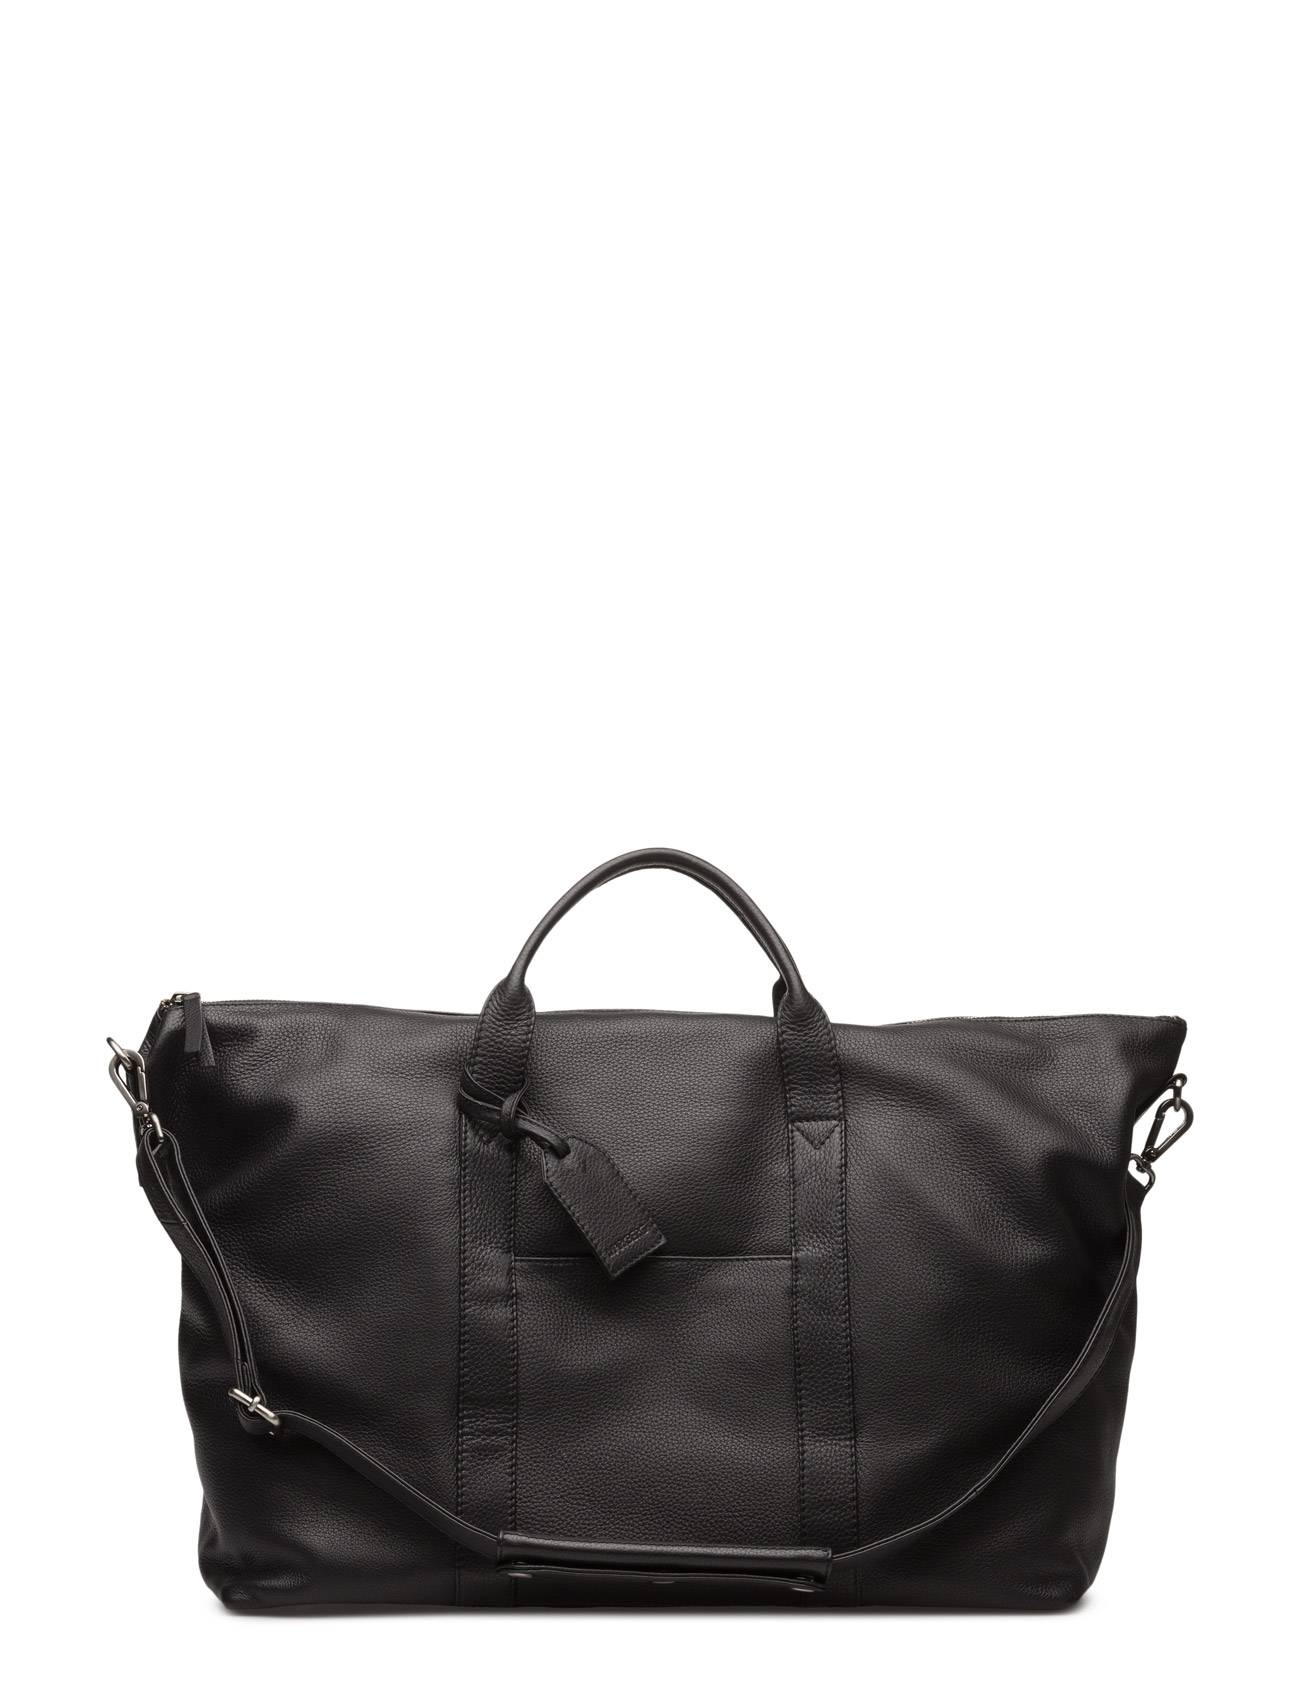 Markberg Isa Travel Bag, Grain